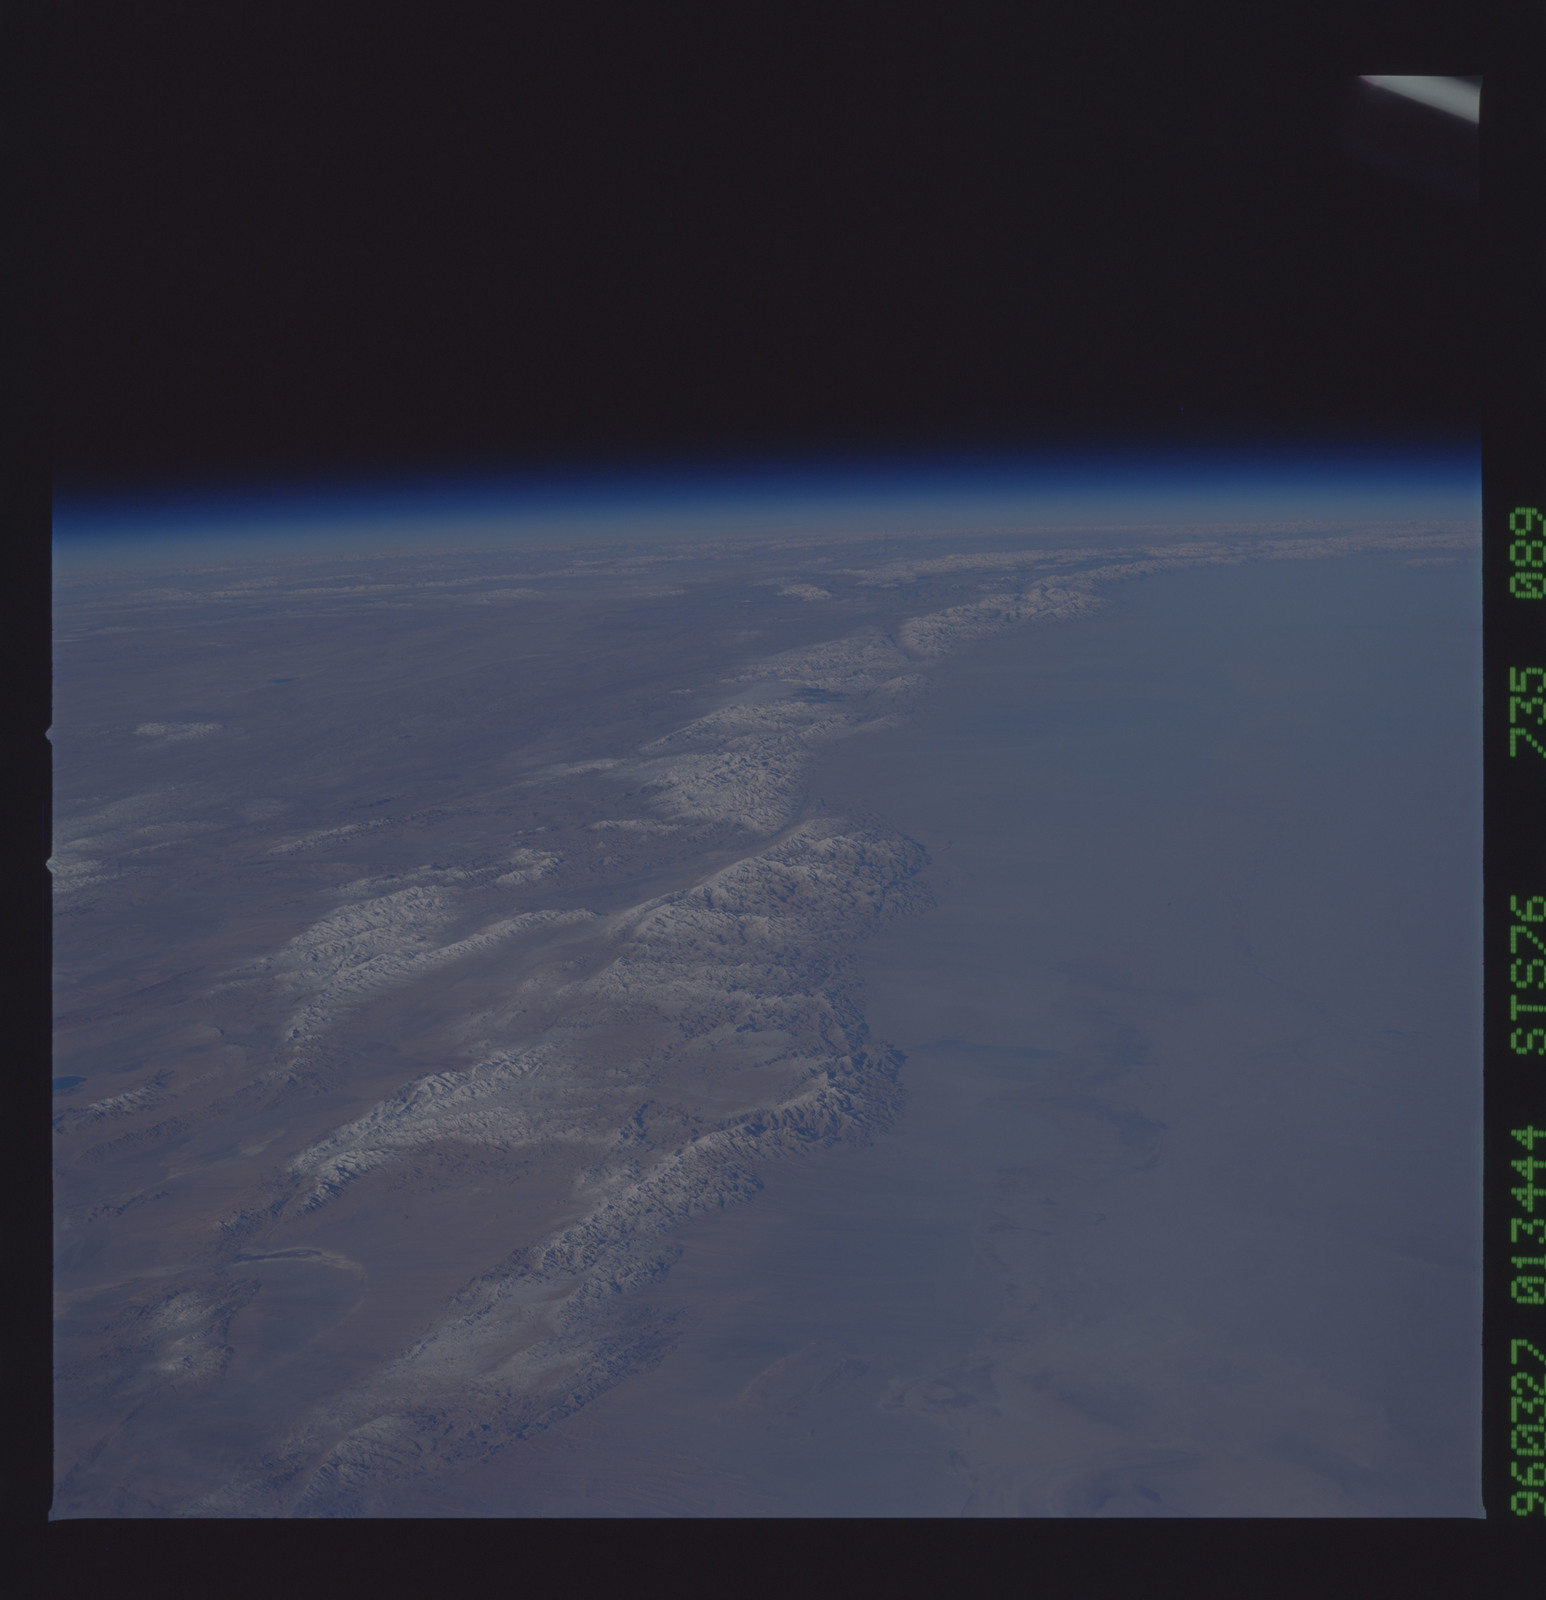 STS076-735-089 - STS-076 - Earth observations taken from shuttle orbiter Atlantis during STS-76 mission